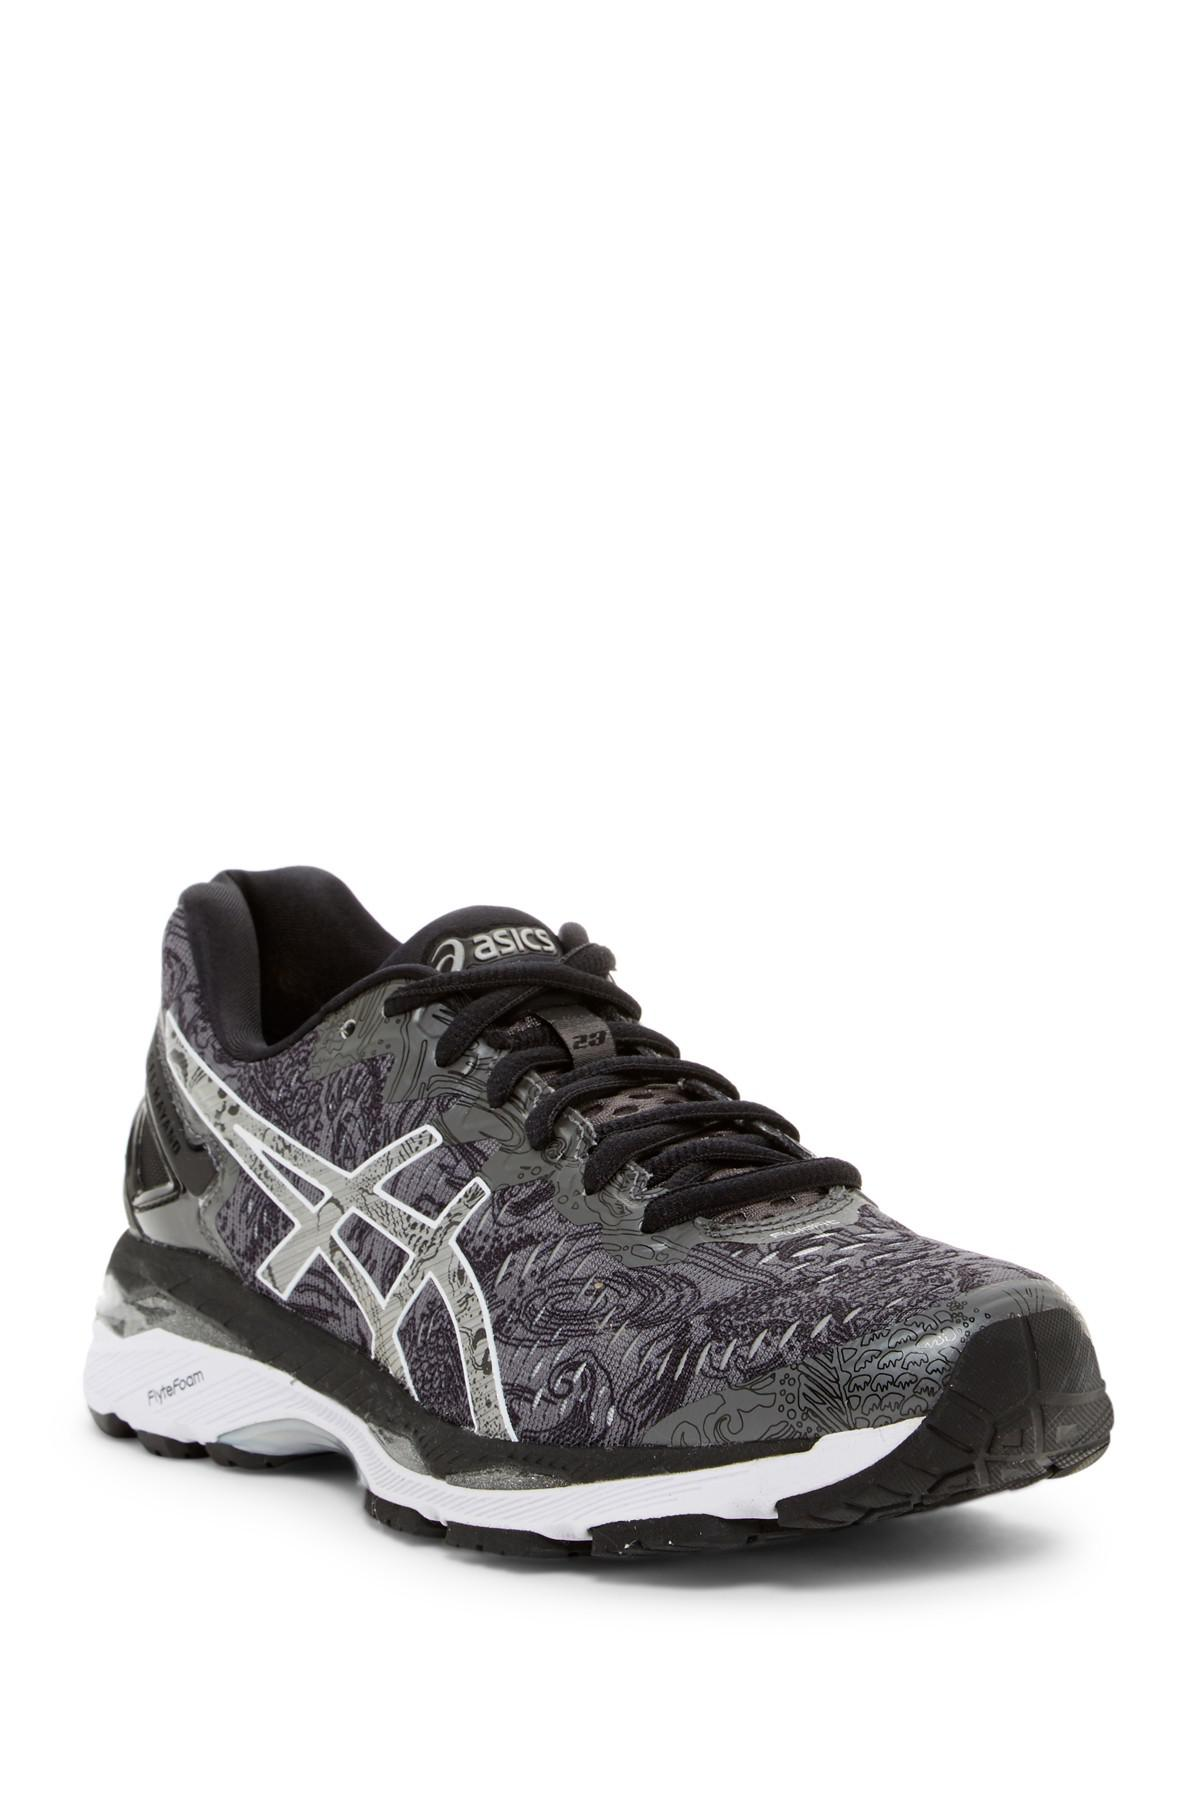 Asics Women S Gel Kayano  Lite Show Running Shoe